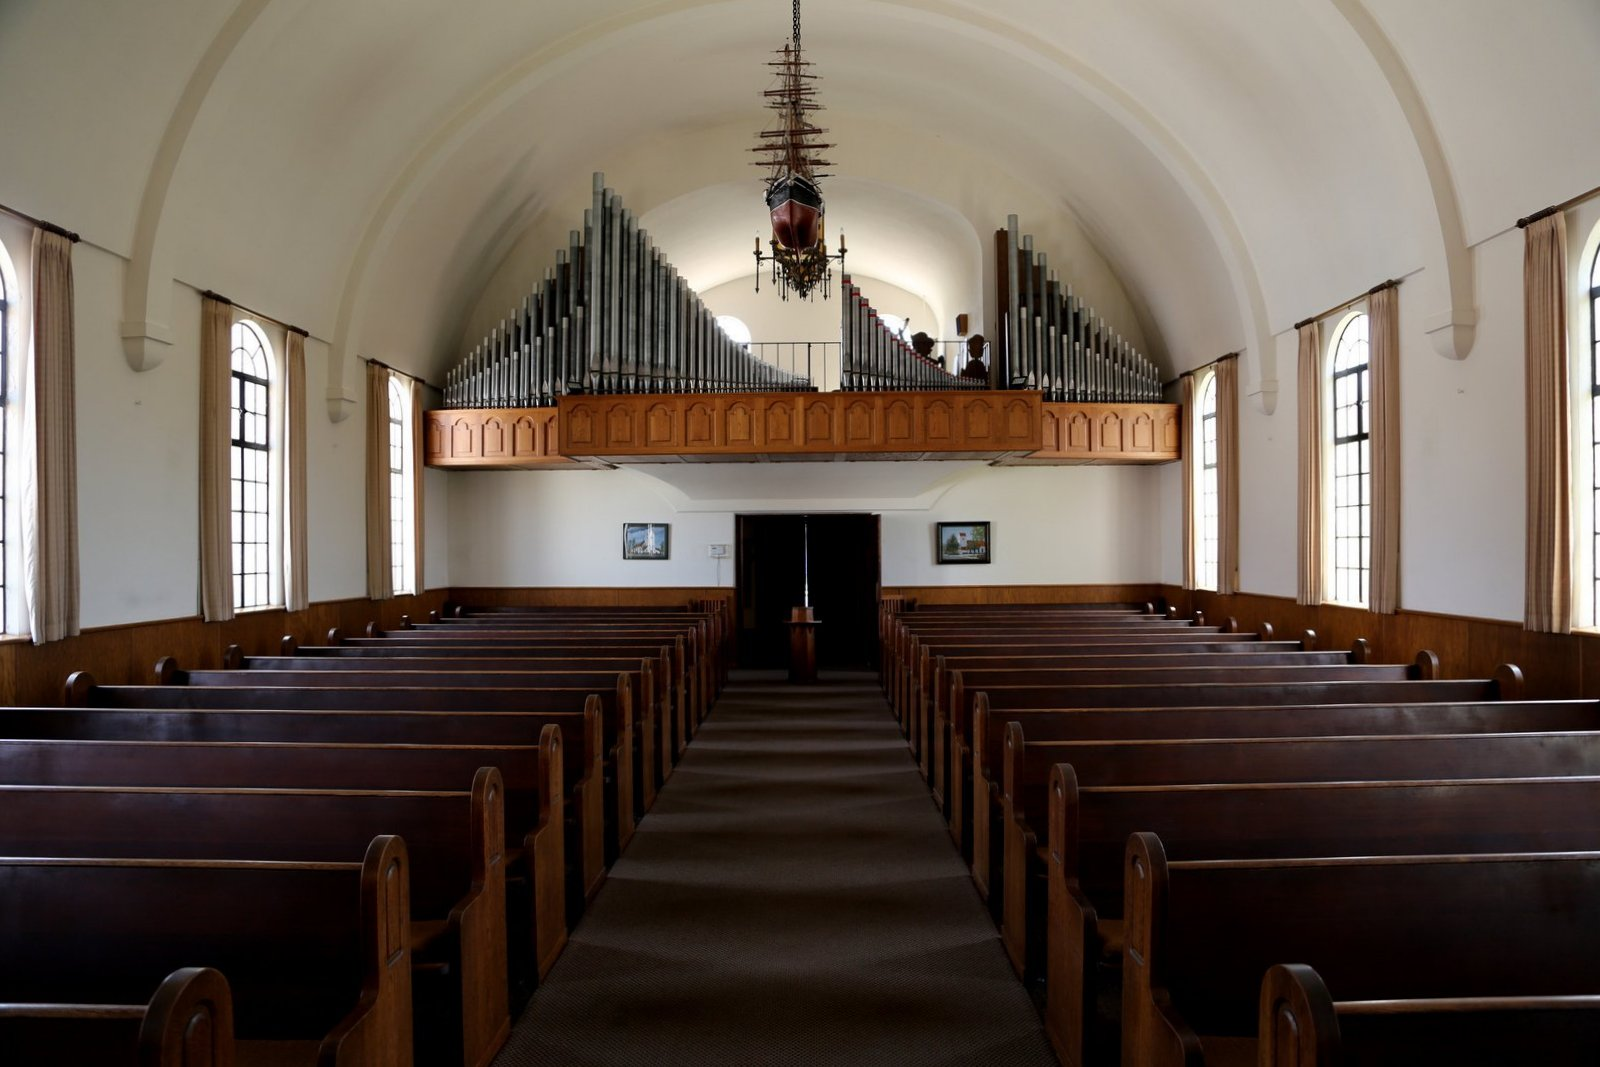 sanctuary-and-organ